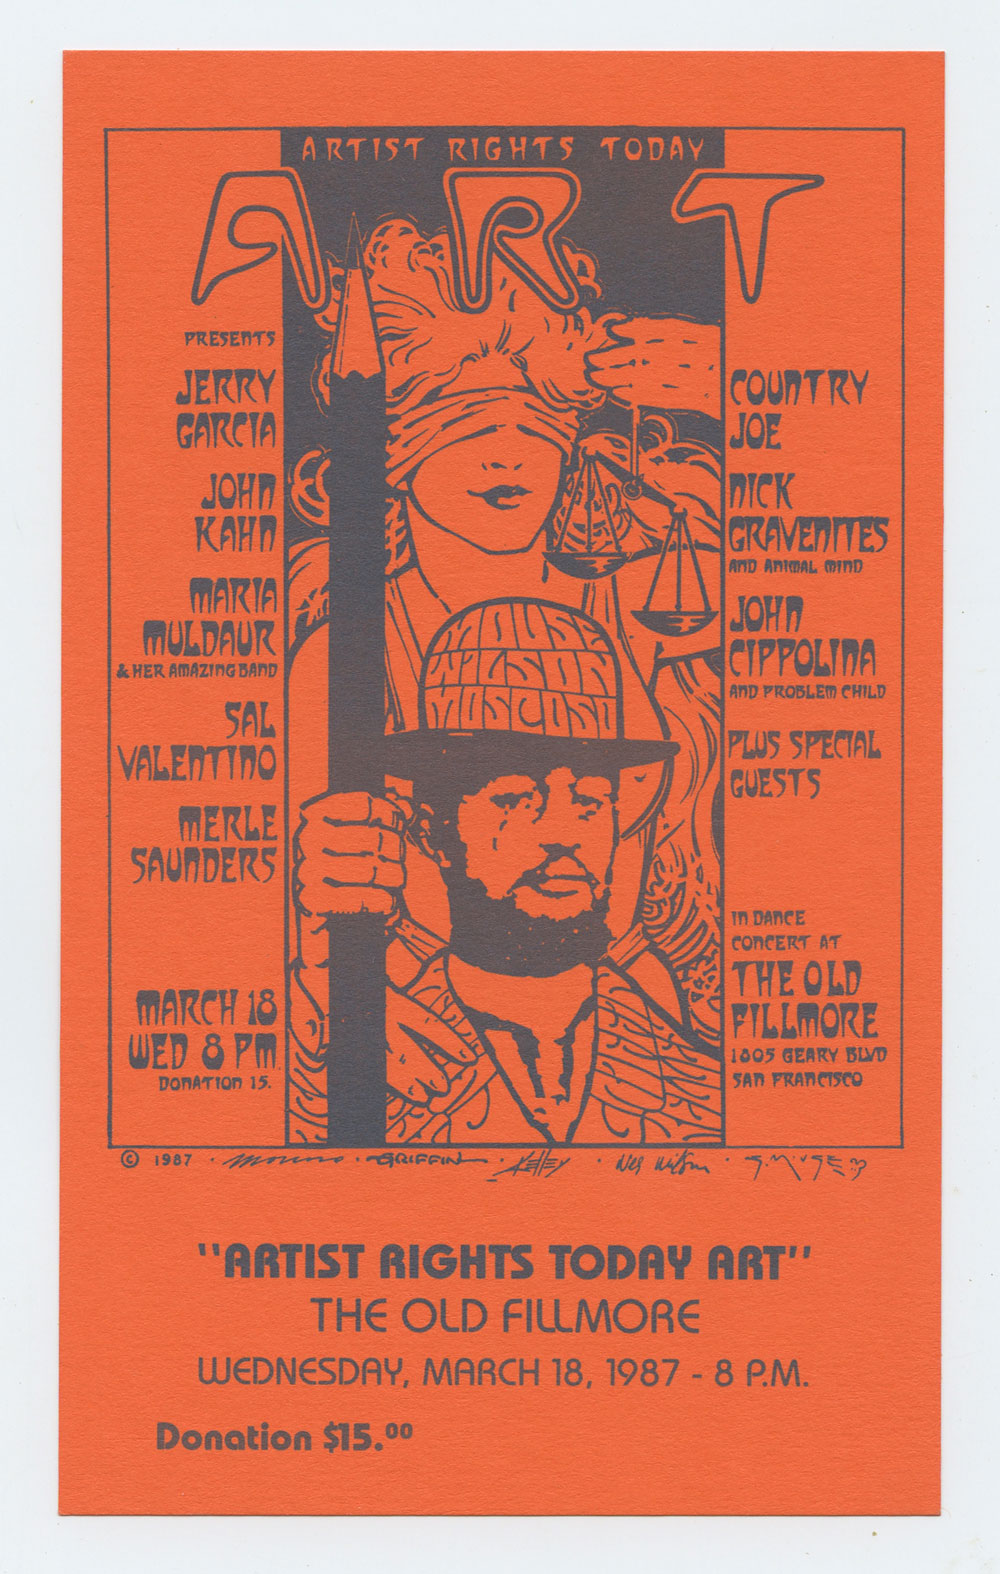 Artist Rights Today Art Concert Handbill 1987 March 16 Old Fillmore Jerri Garcia Country Joe